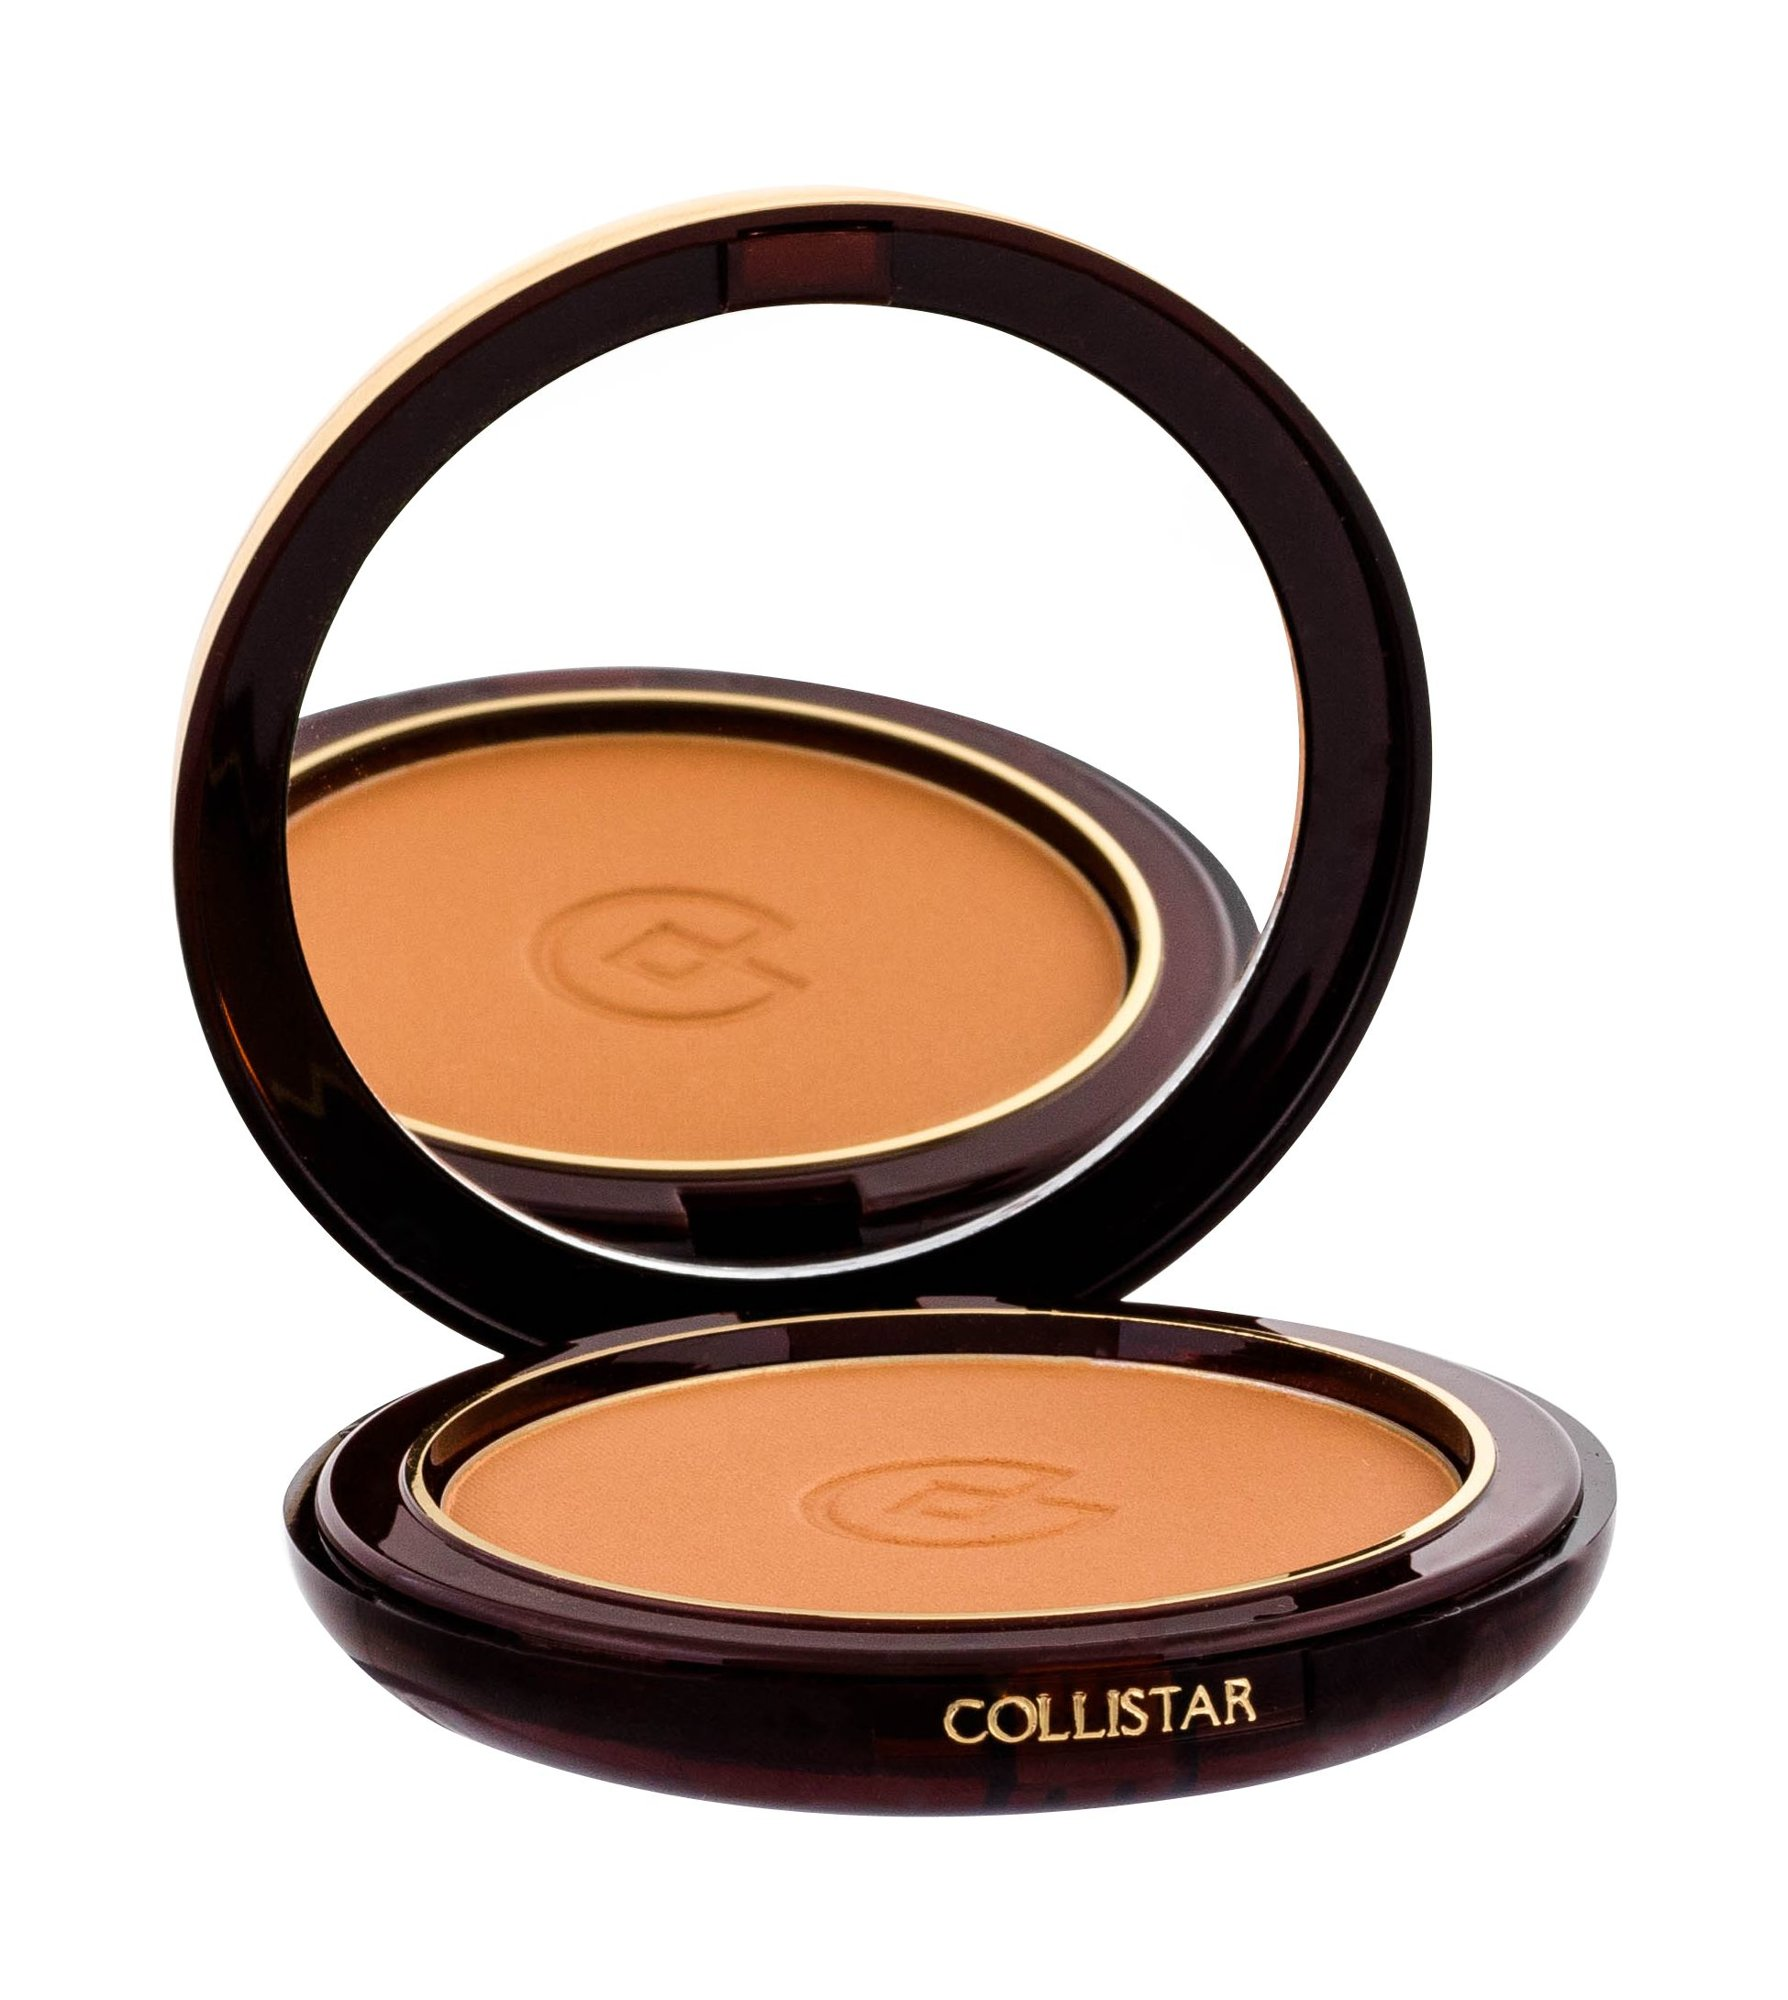 Collistar Silk Effect Bronzing Powder Cosmetic 10ml 7 Bali